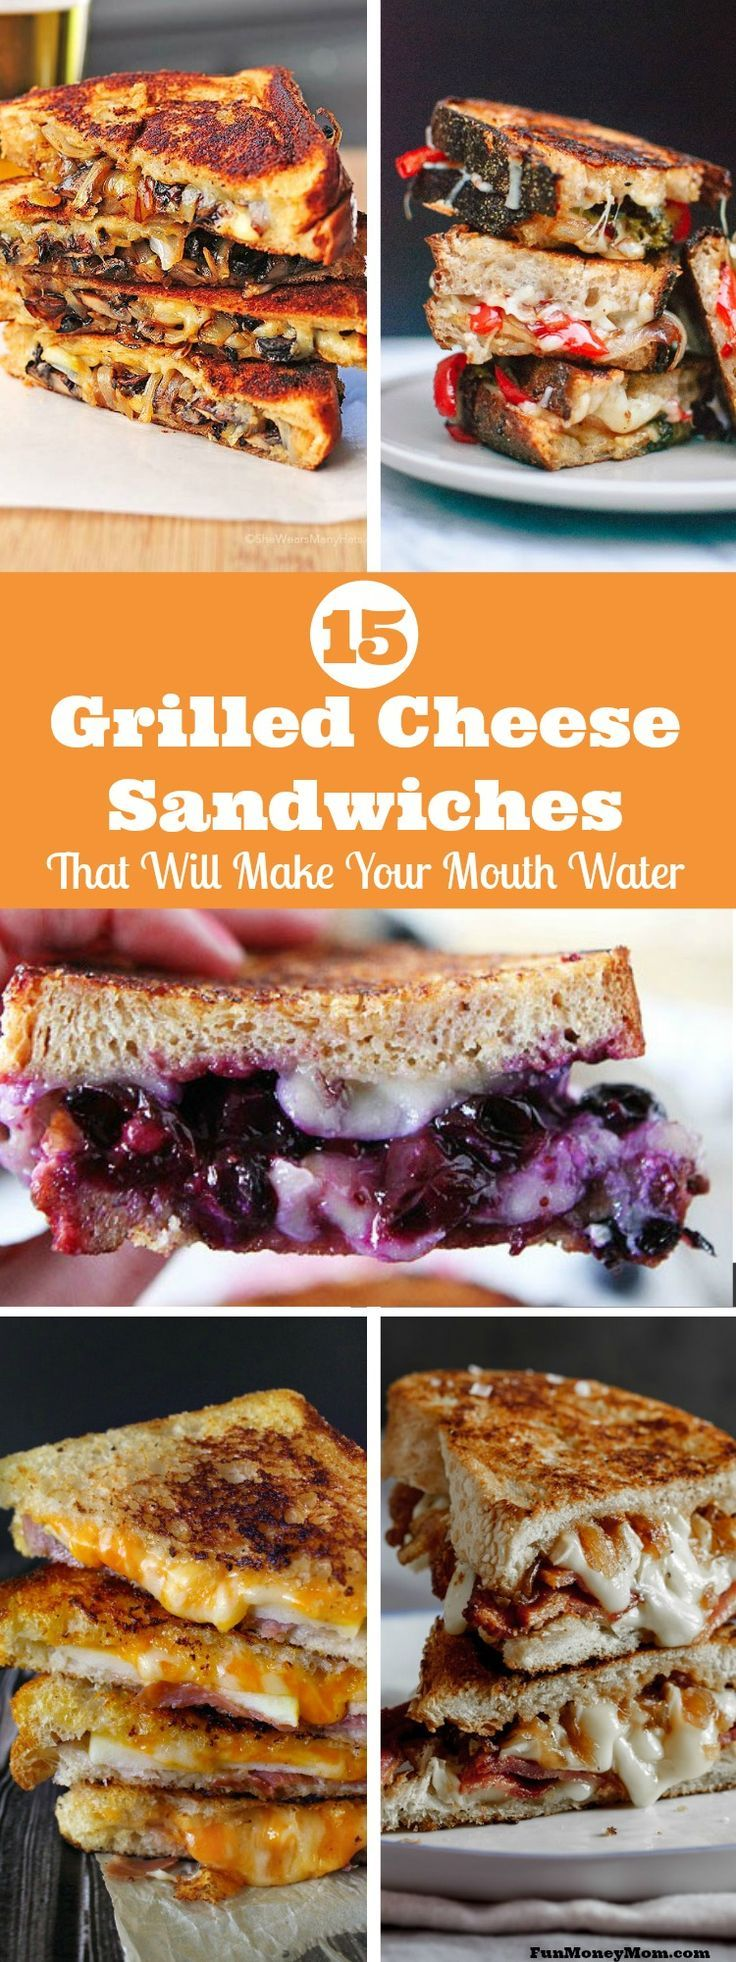 With ingredients like bacon, brie and apples, these fun grilled cheese sandwich recipes will have you craving grilled cheese every day of the week!